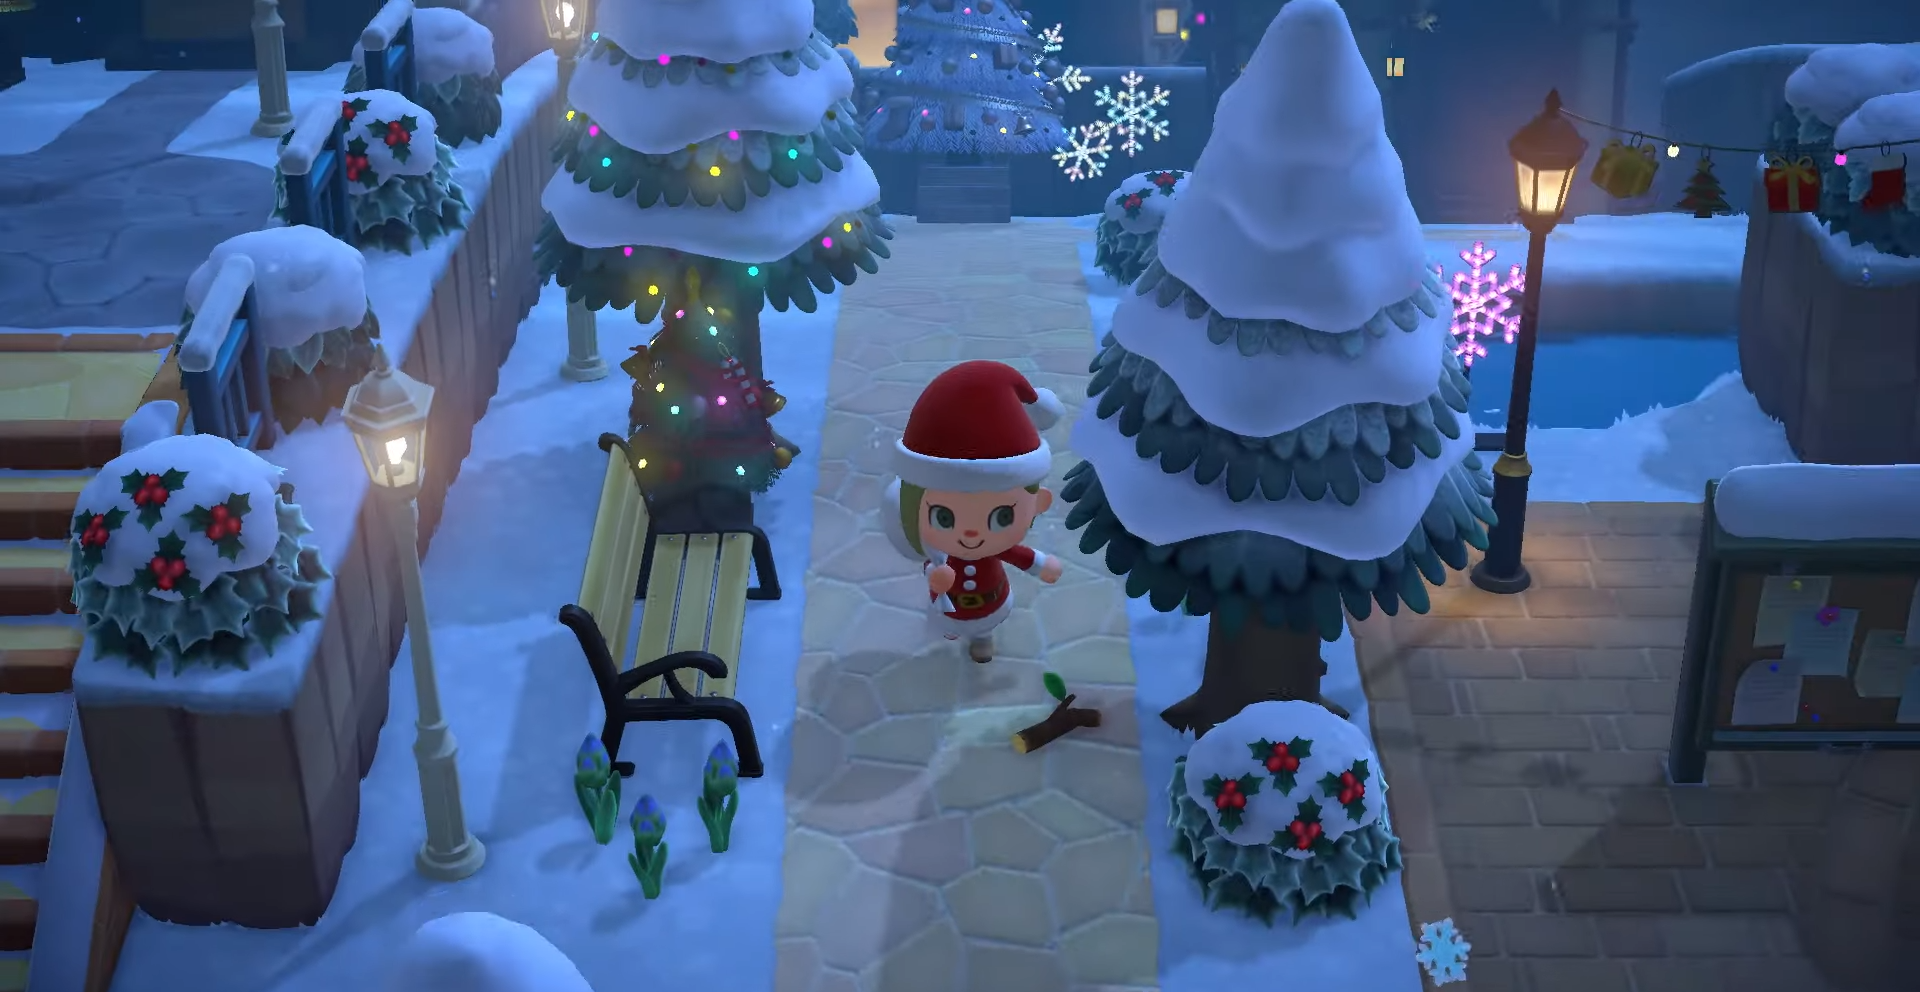 Animal Crossing: New Horizons – When Does The Snow Melt and Go Away? - DualShockers